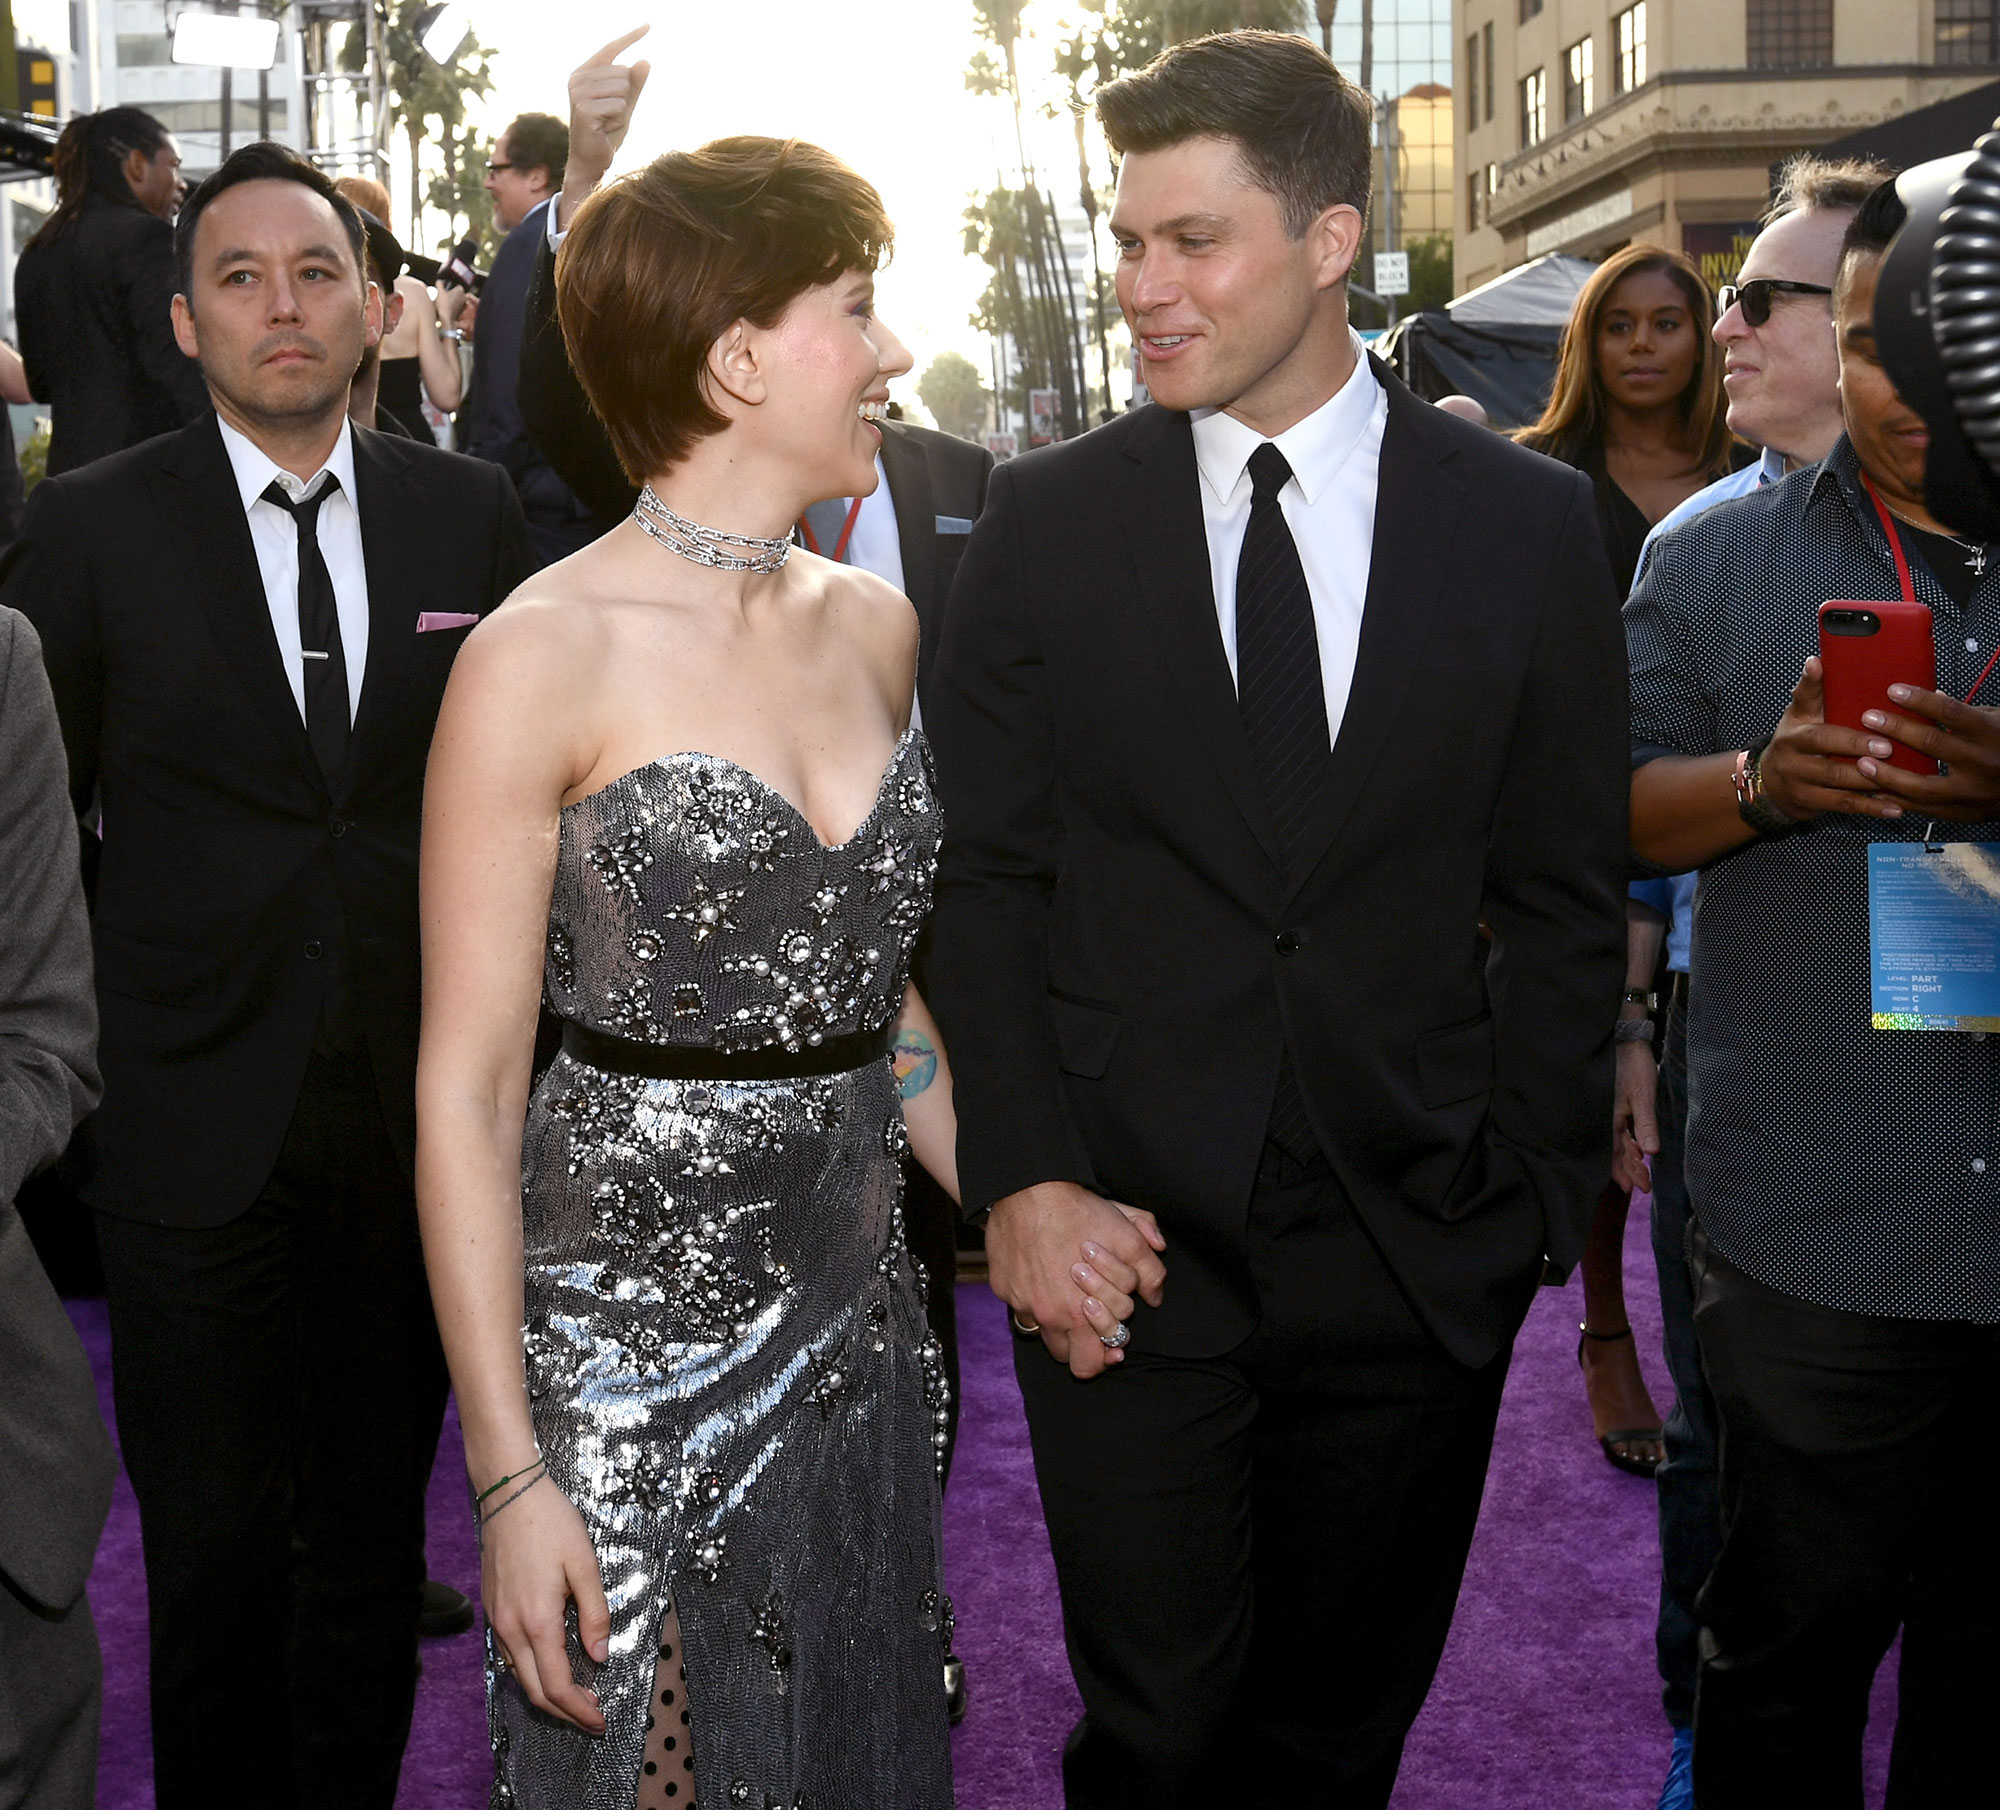 """Scarlett Johansson and Colin Jost Relationship Timeline Avengers Infinity War - The lovebirds returned to Long Island for a romantic date night at Indian Wells Tavern in Amagansett. """"They were holding hands as they sat across the table from each other when the server approached them,"""" an onlooker told Us ."""